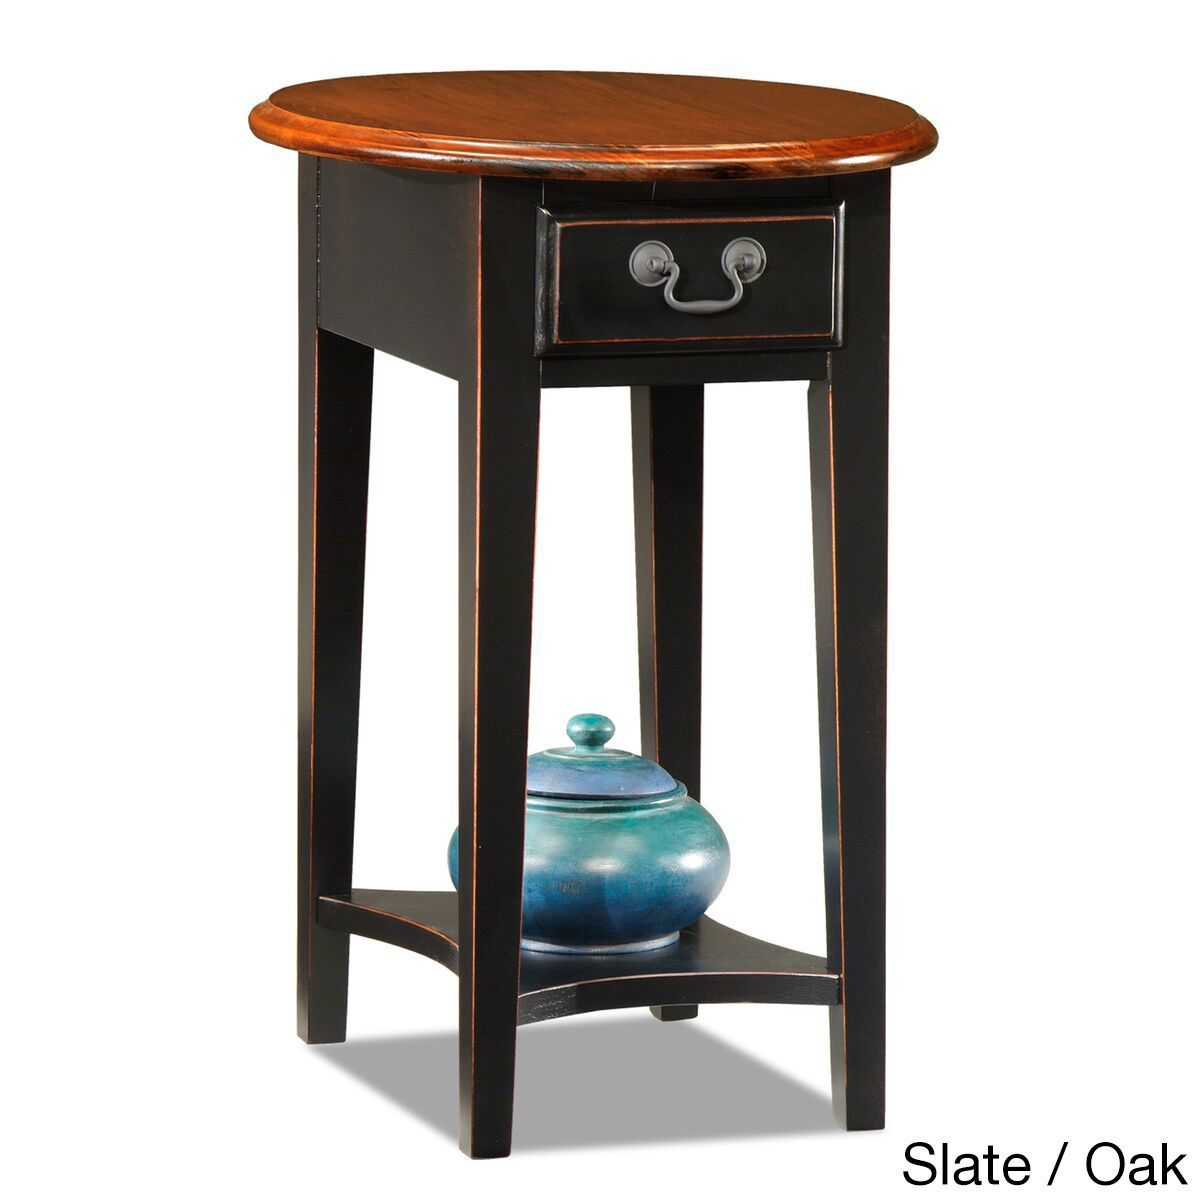 furnishings hardwood oval side table black finish low small oak accent tables your living room couch with this piece crafted large corner target chair covers modern round arm